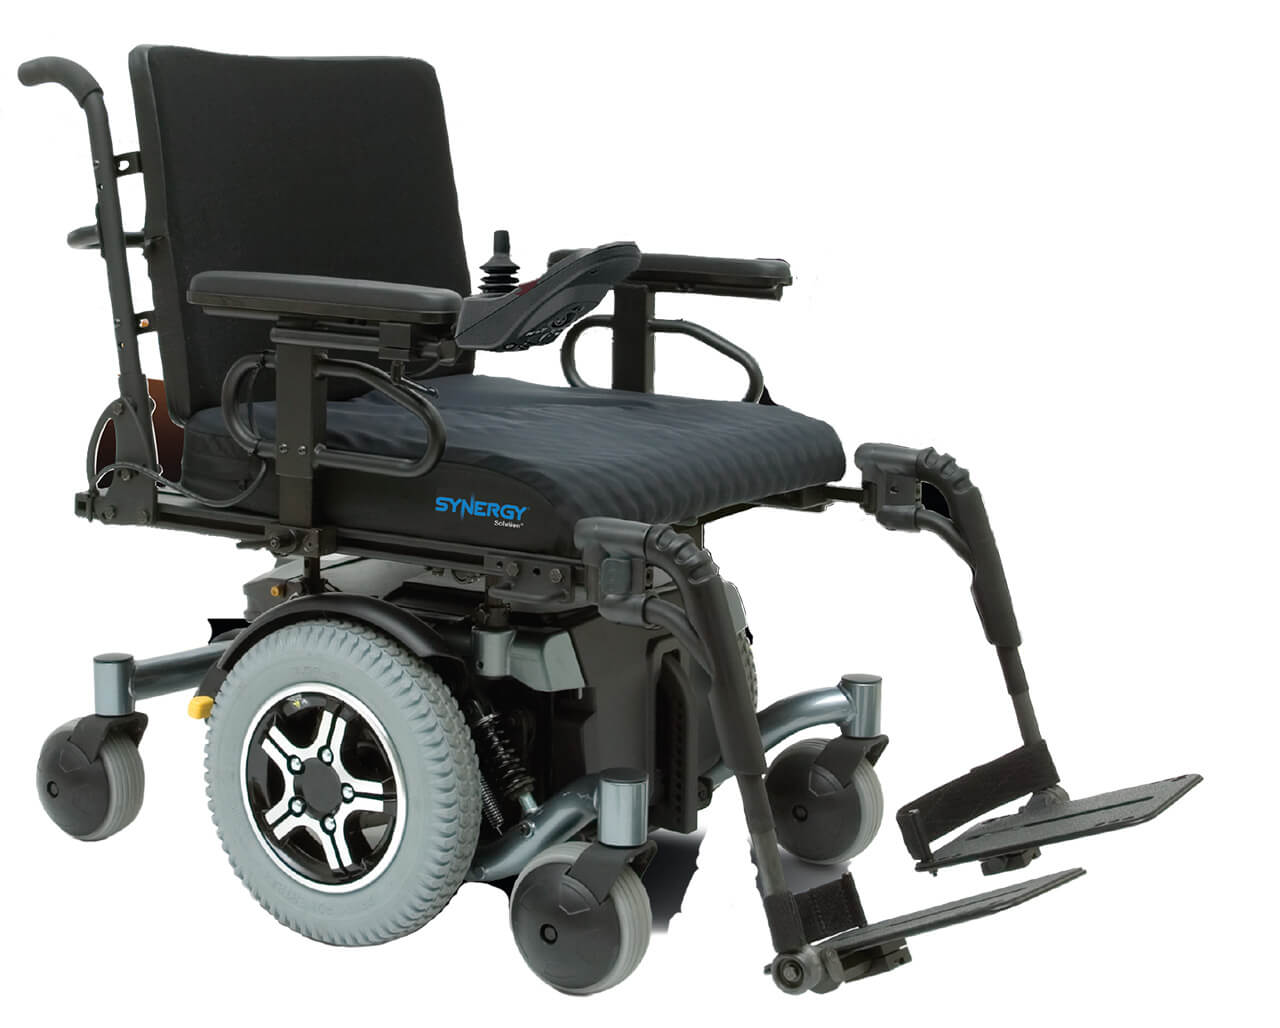 quantum 600 power chair office chairs under 50 pride sport hd powerchair for hire or sale